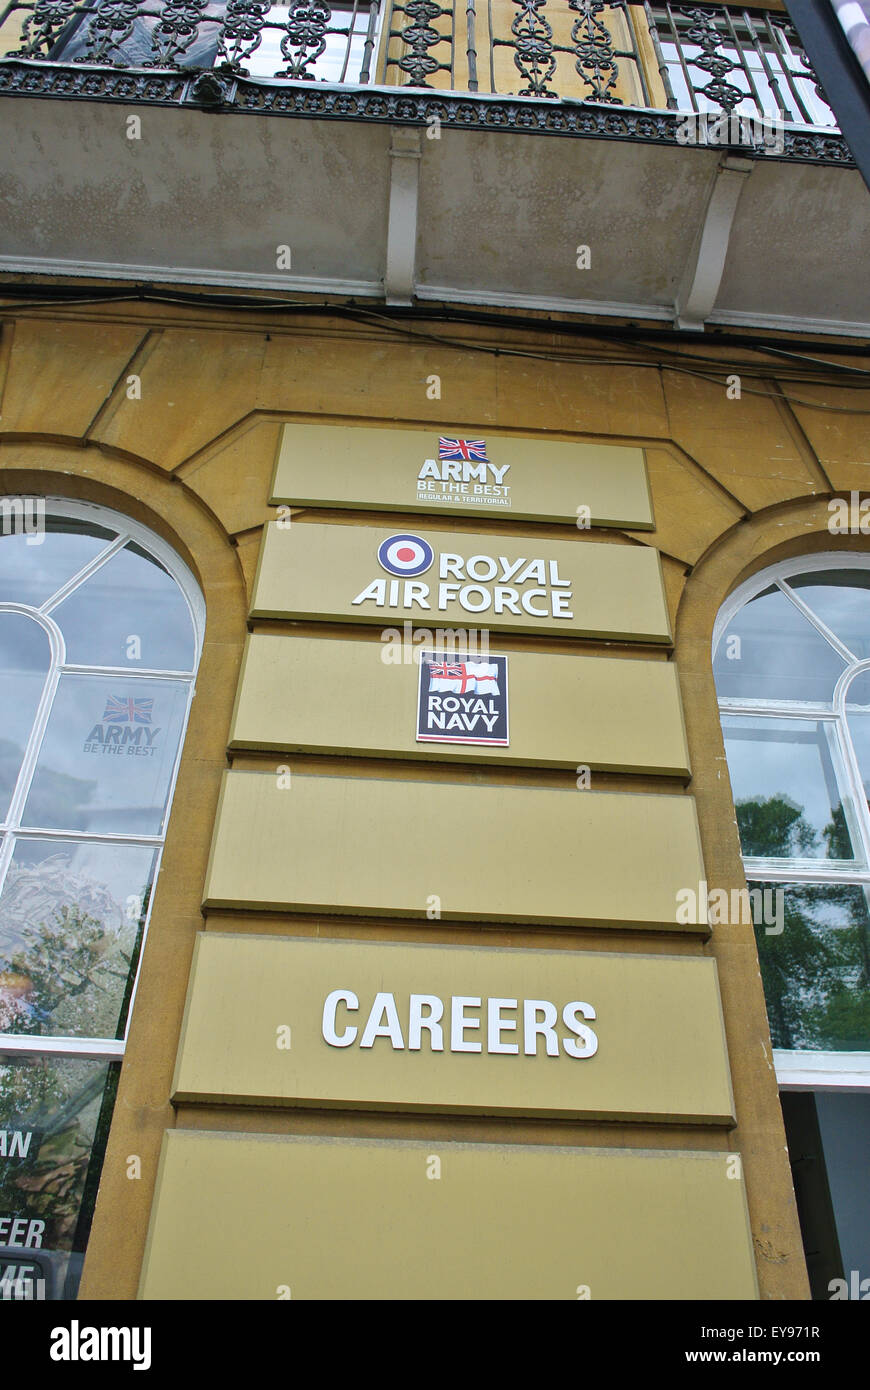 Army Air Force careers office Oxford England UK Stock Photo